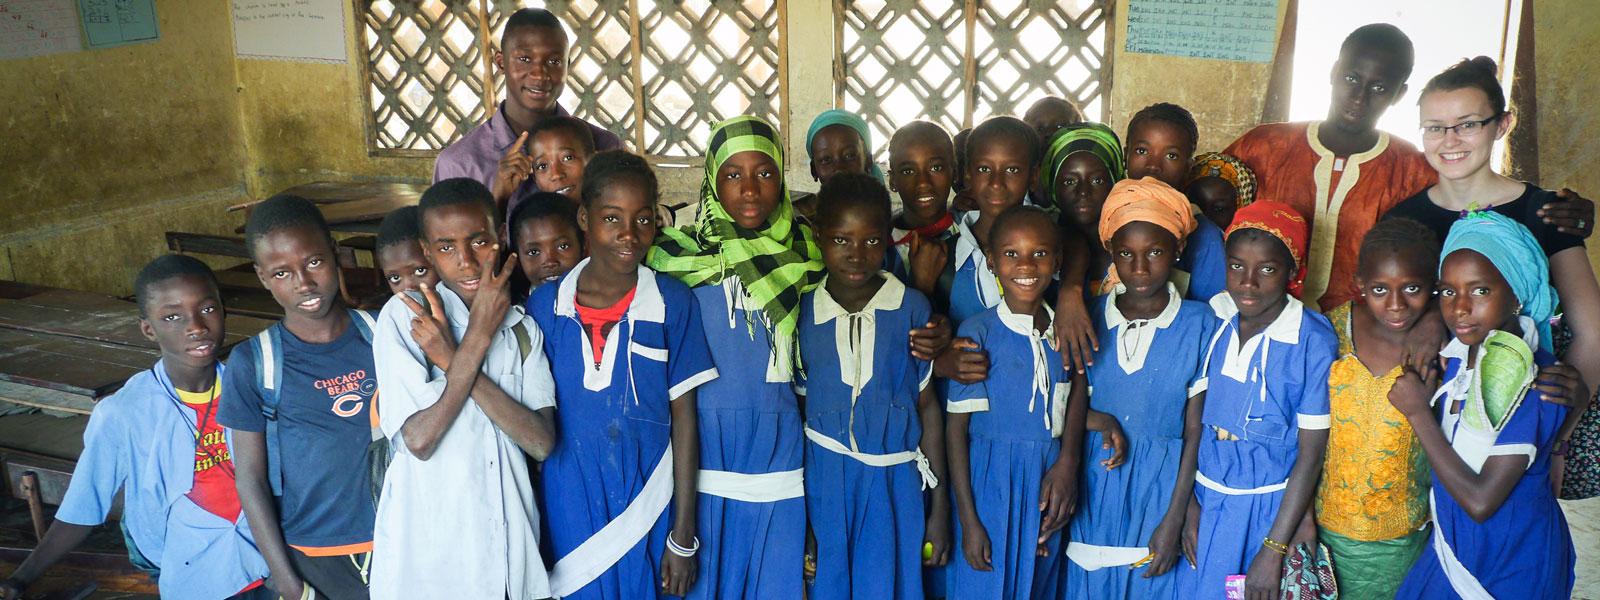 Strathclyde students posing with a group of pupils from a school in Gambia